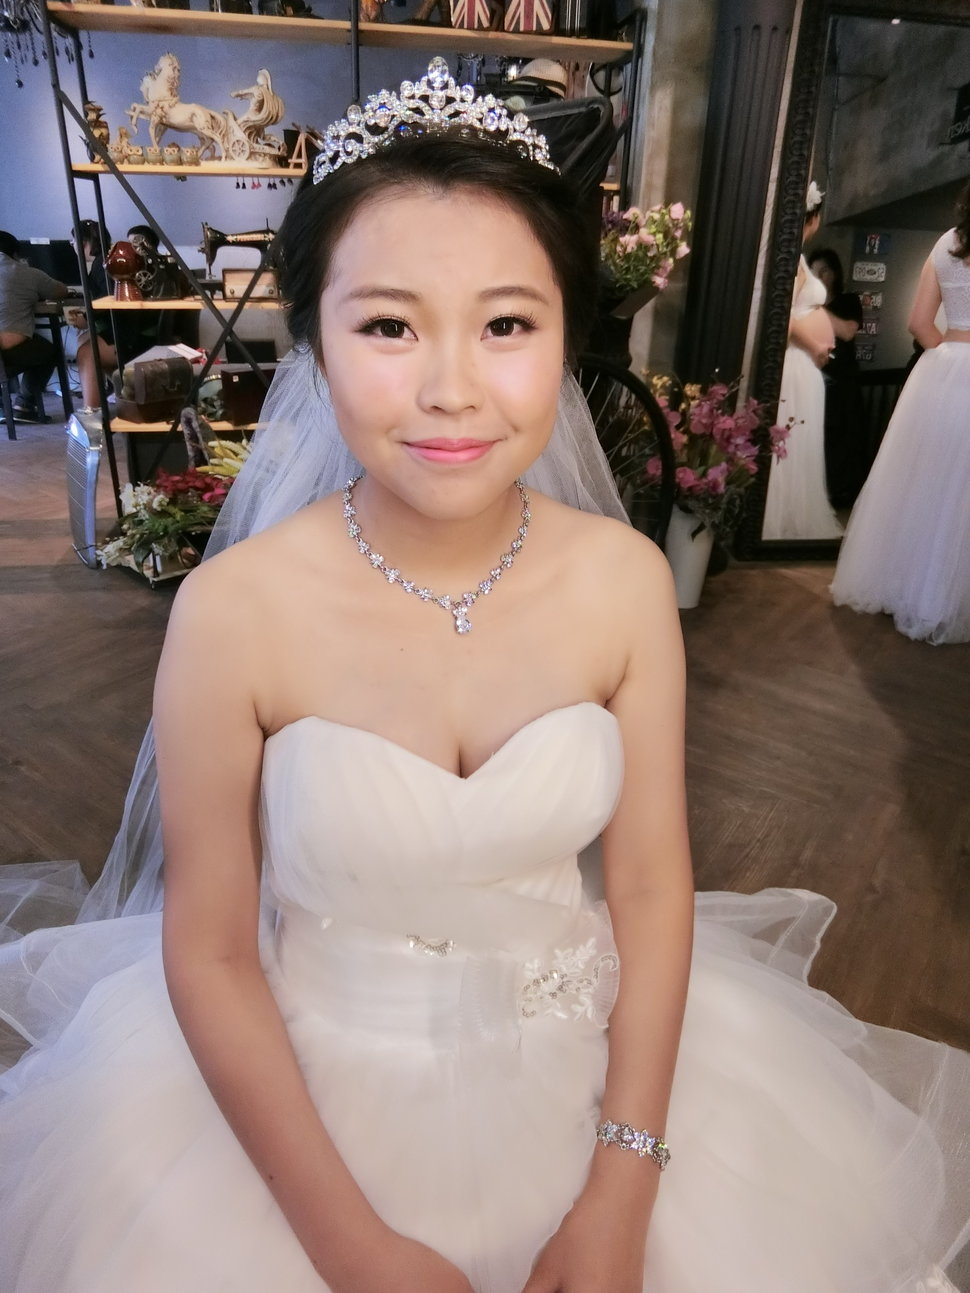 IMG_9910 - Vicky Jane makeup《結婚吧》